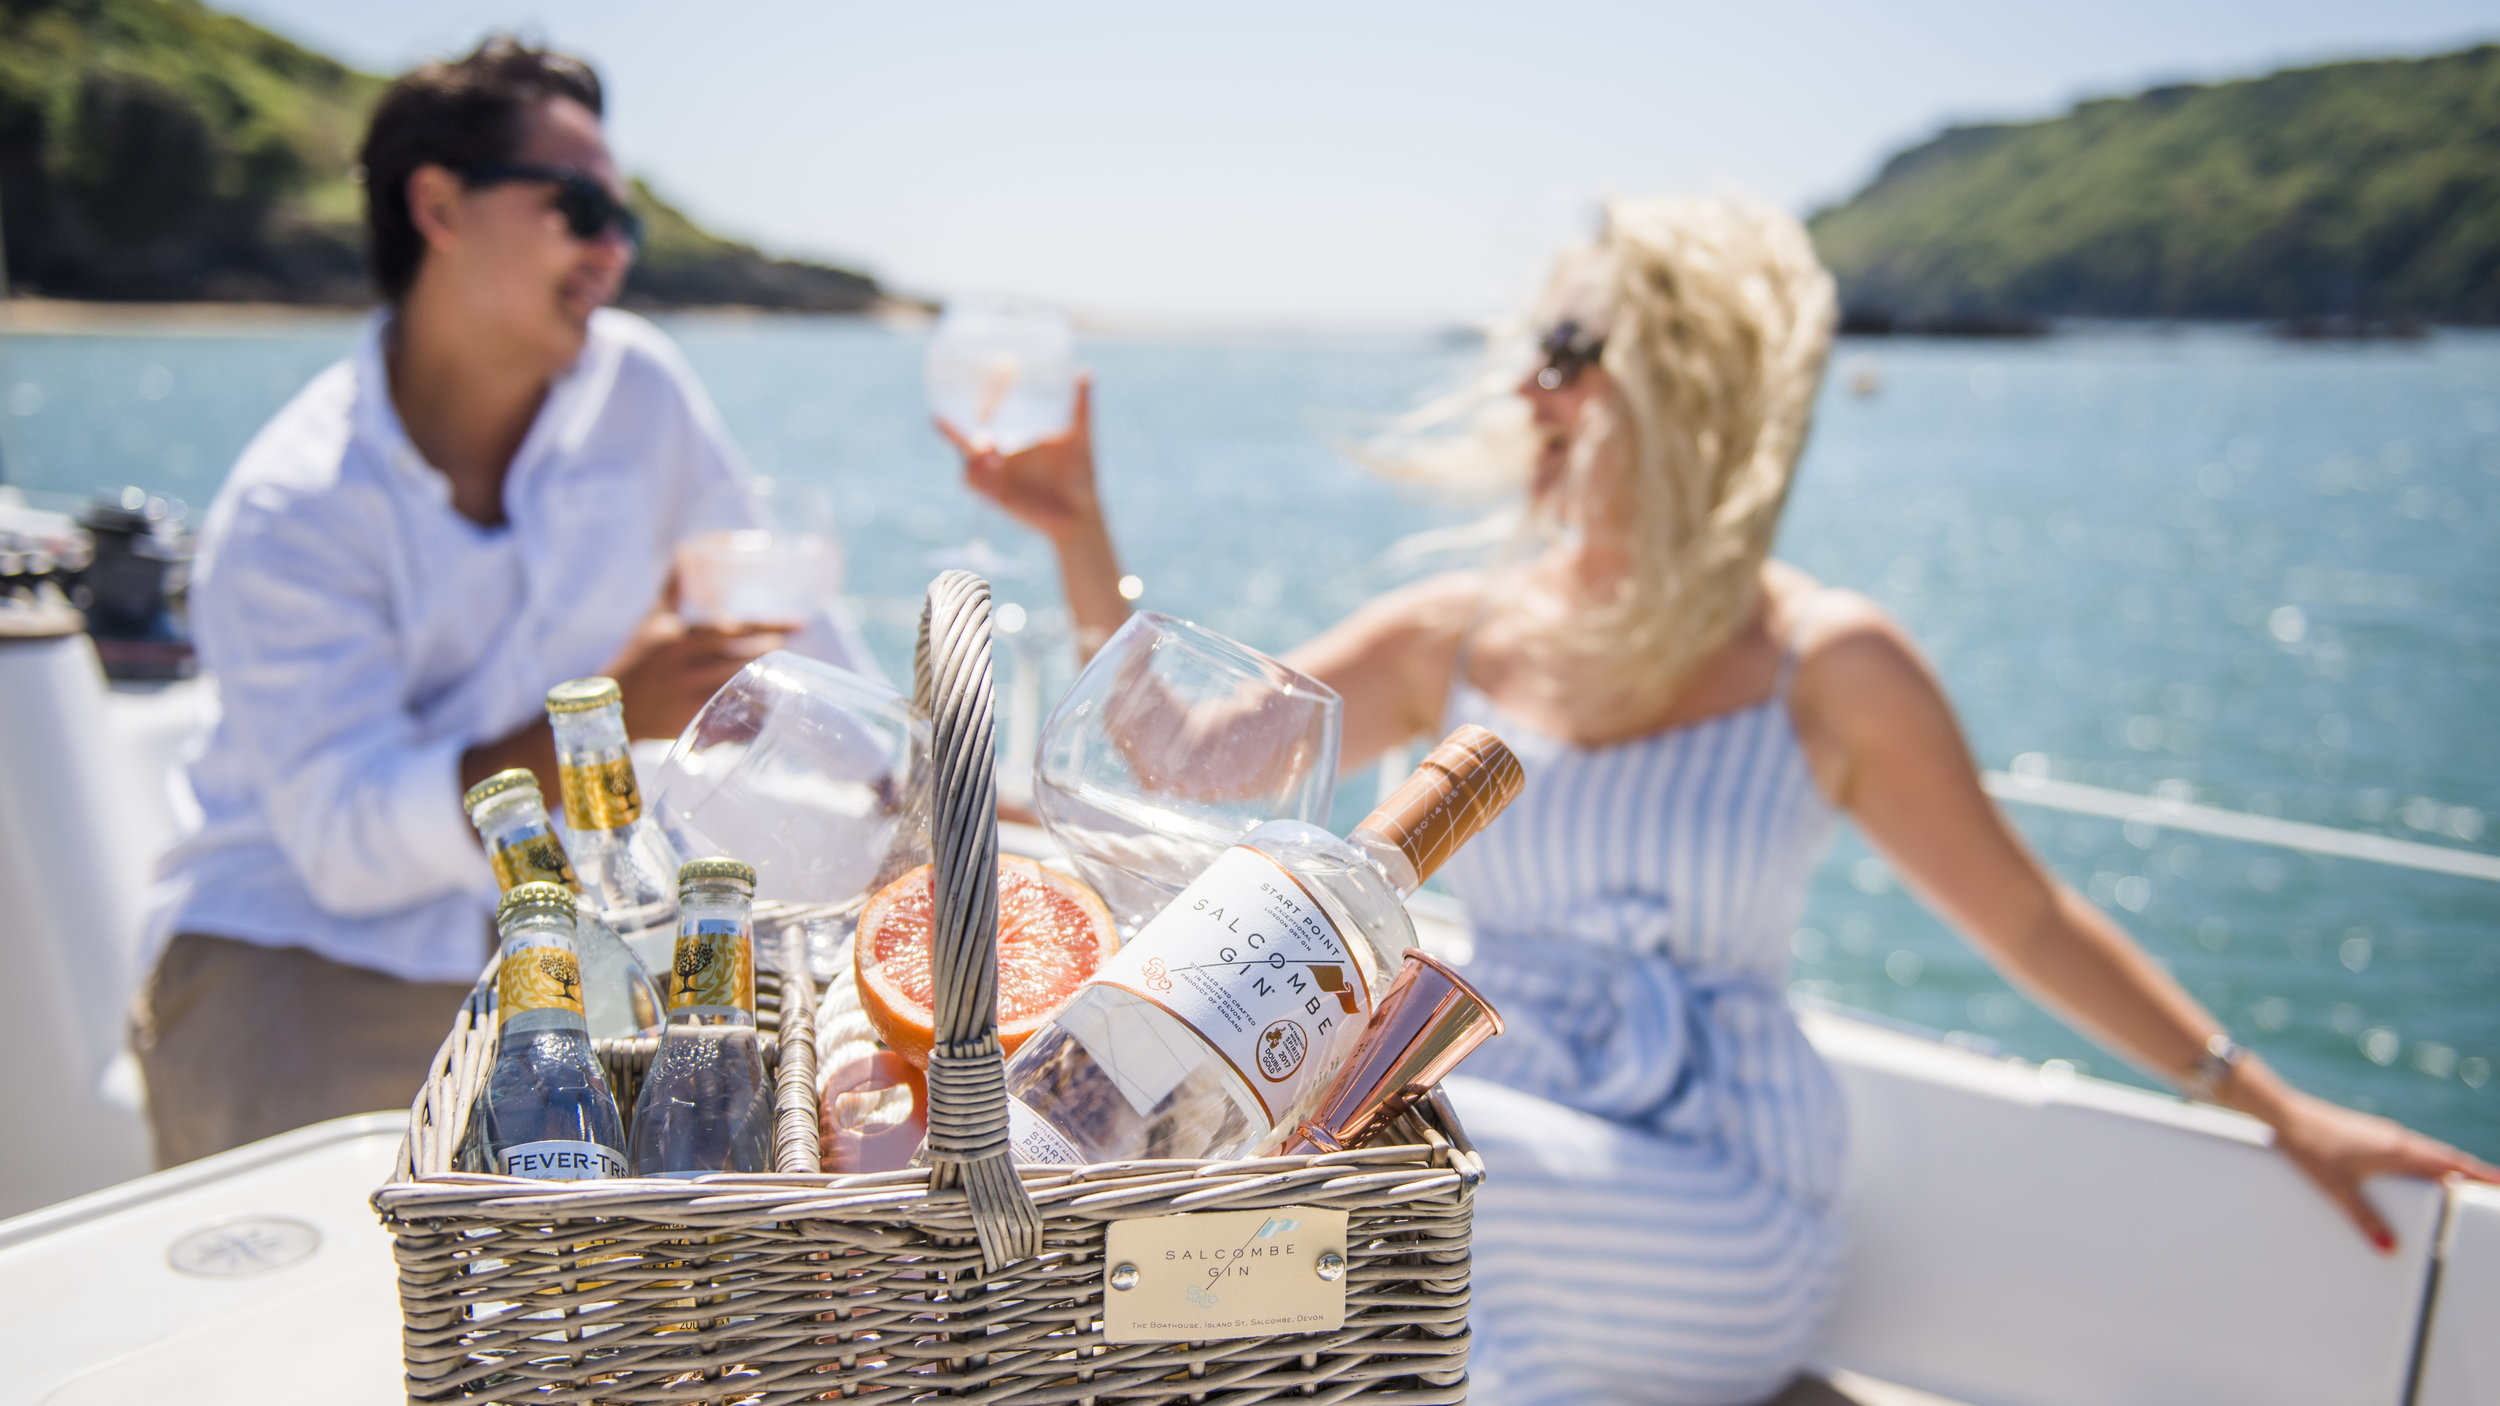 Yacht delivery service -